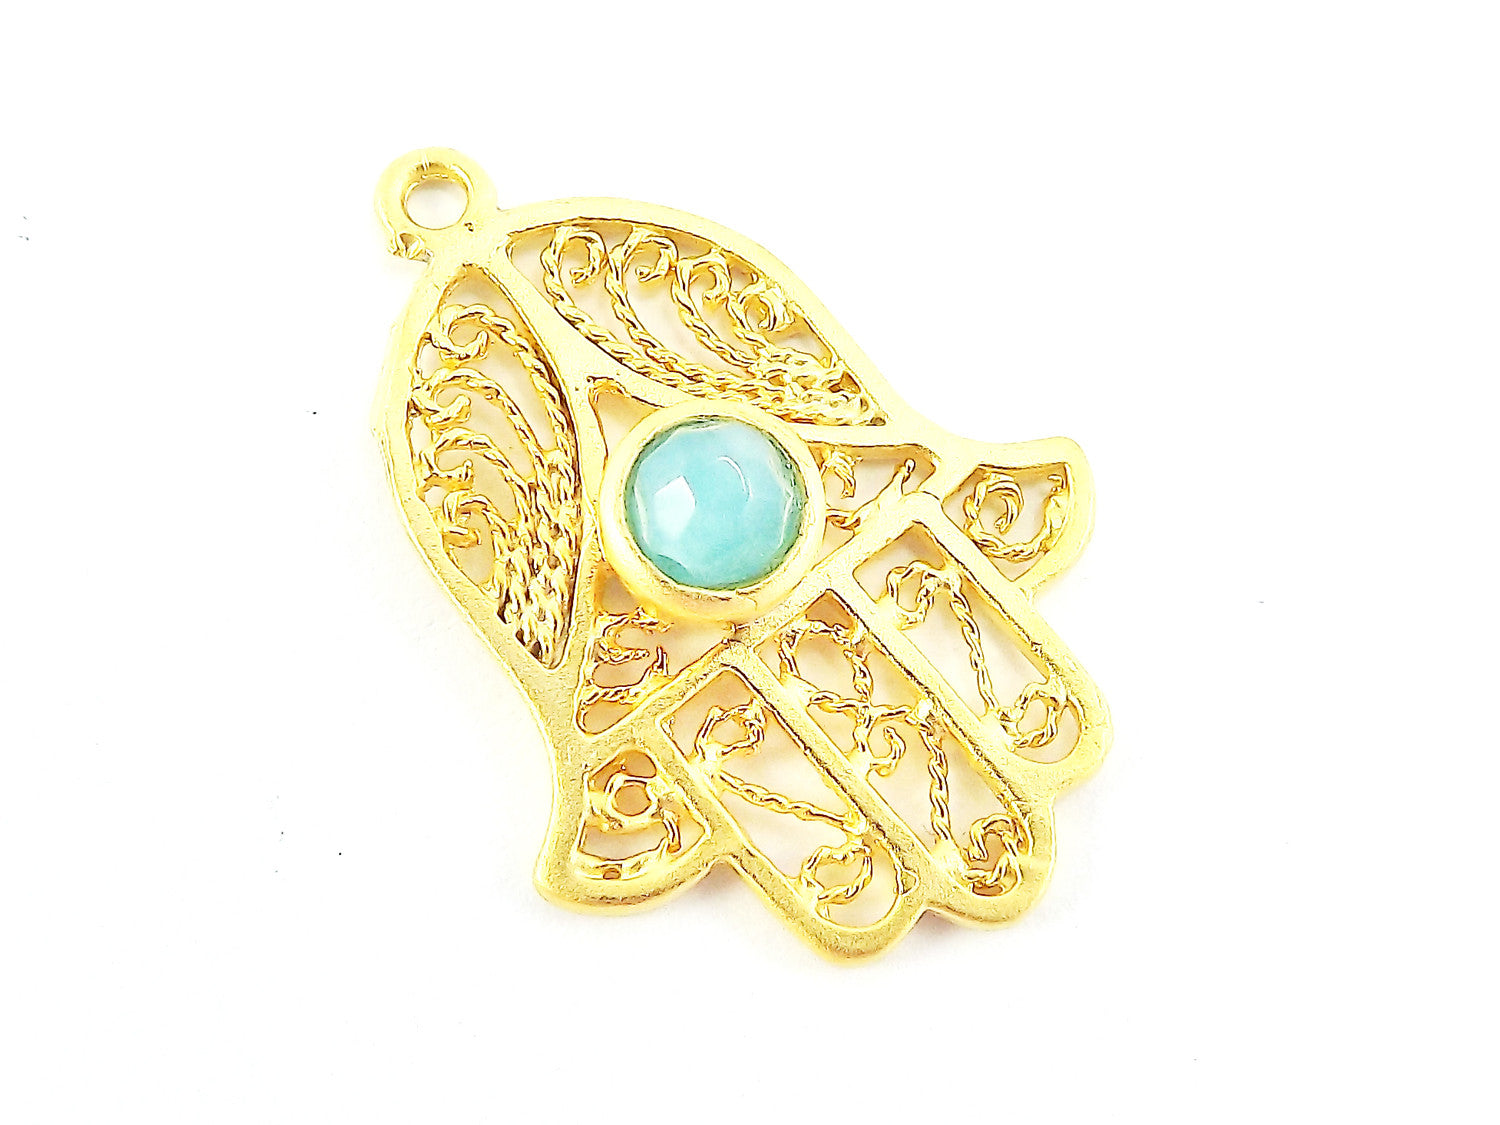 Filigree Hand of Fatima Hamsa Pendant Charm with Aqua Facet Cut Jade Accent- 22k Matte Gold Plated